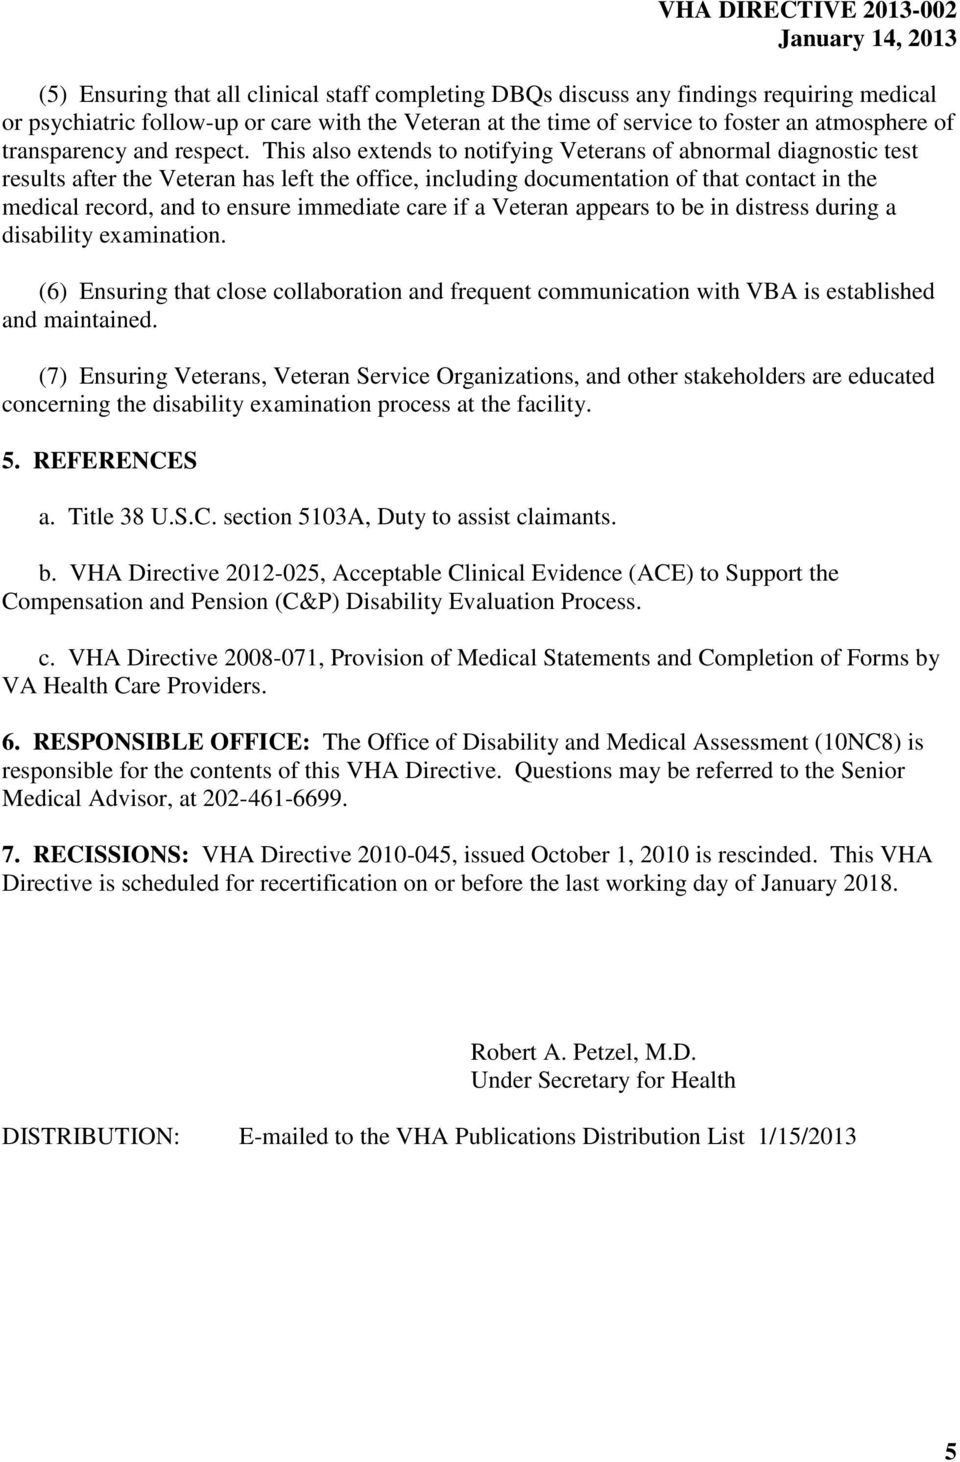 This also extends to notifying Veterans of abnormal diagnostic test results after the Veteran has left the office, including documentation of that contact in the medical record, and to ensure